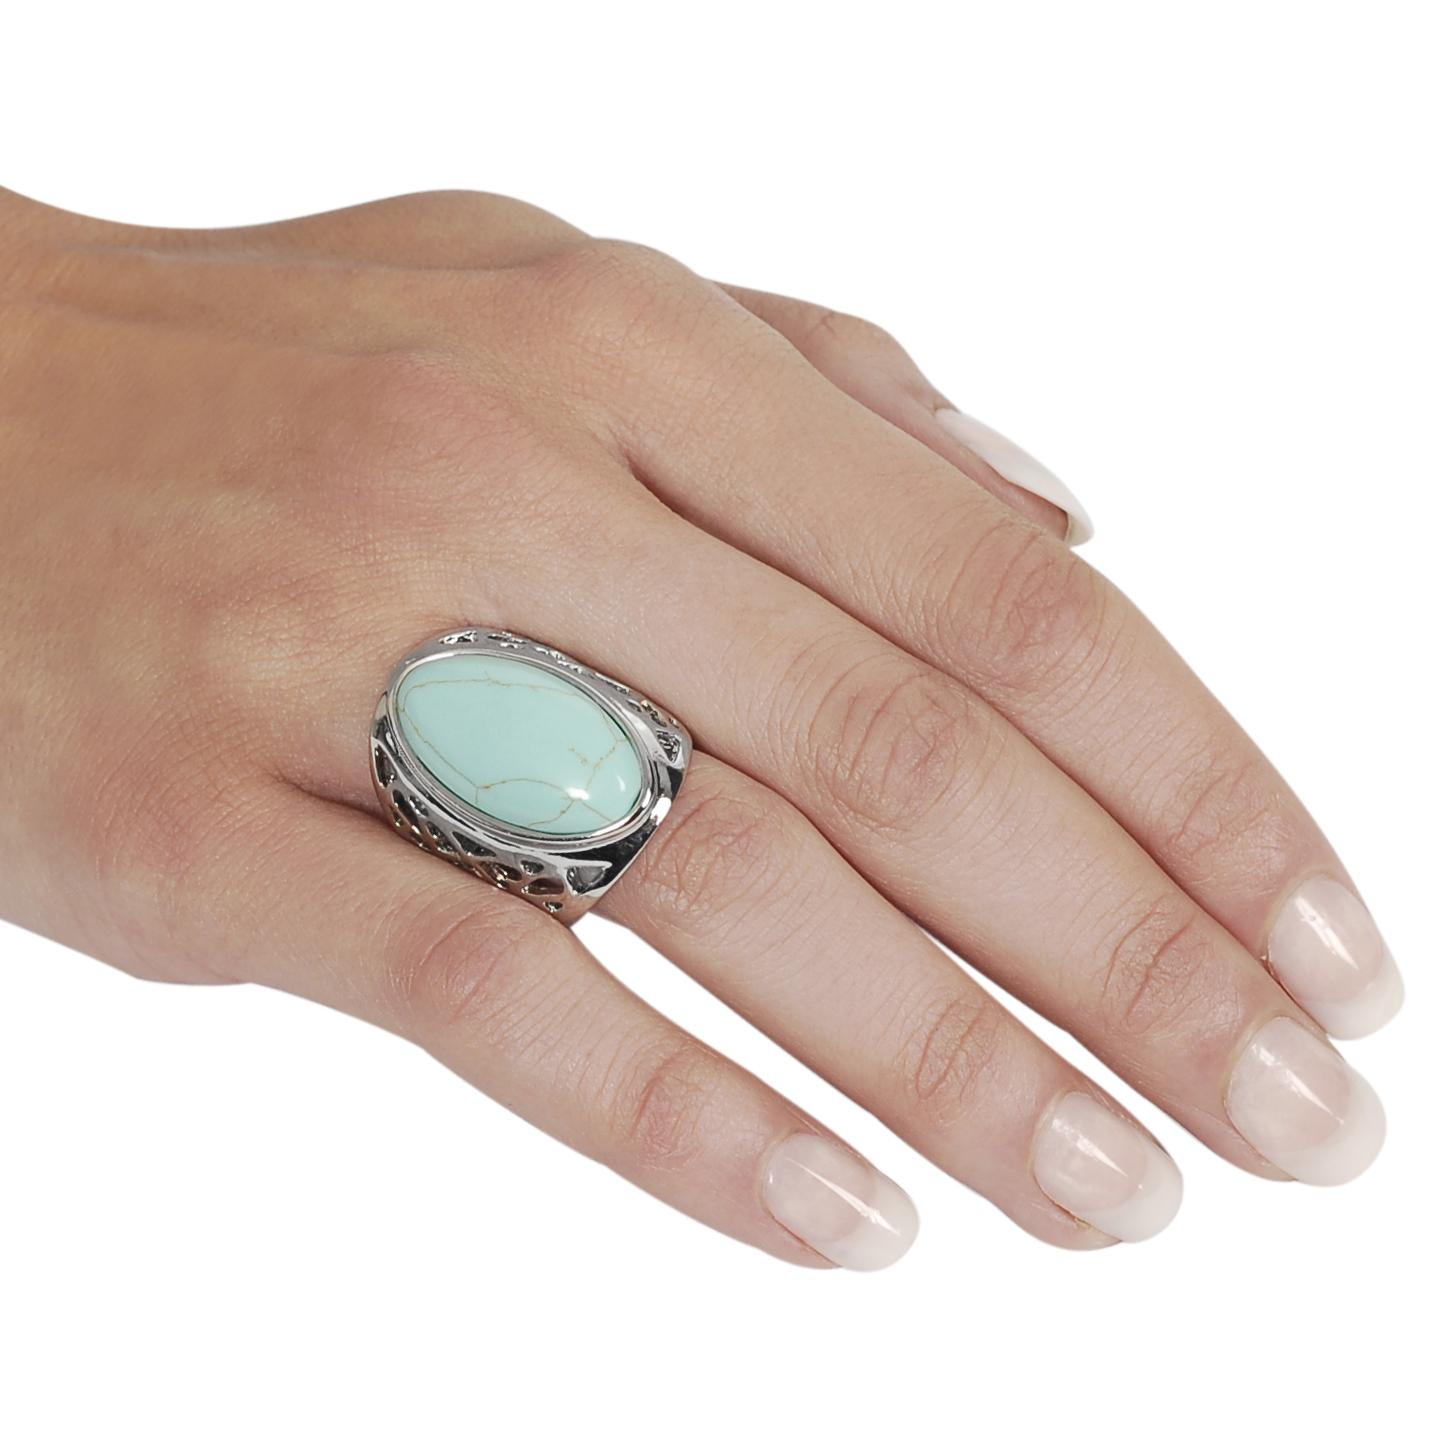 Silvertone Oval-shaped Turquoise Ring - Thumbnail 2